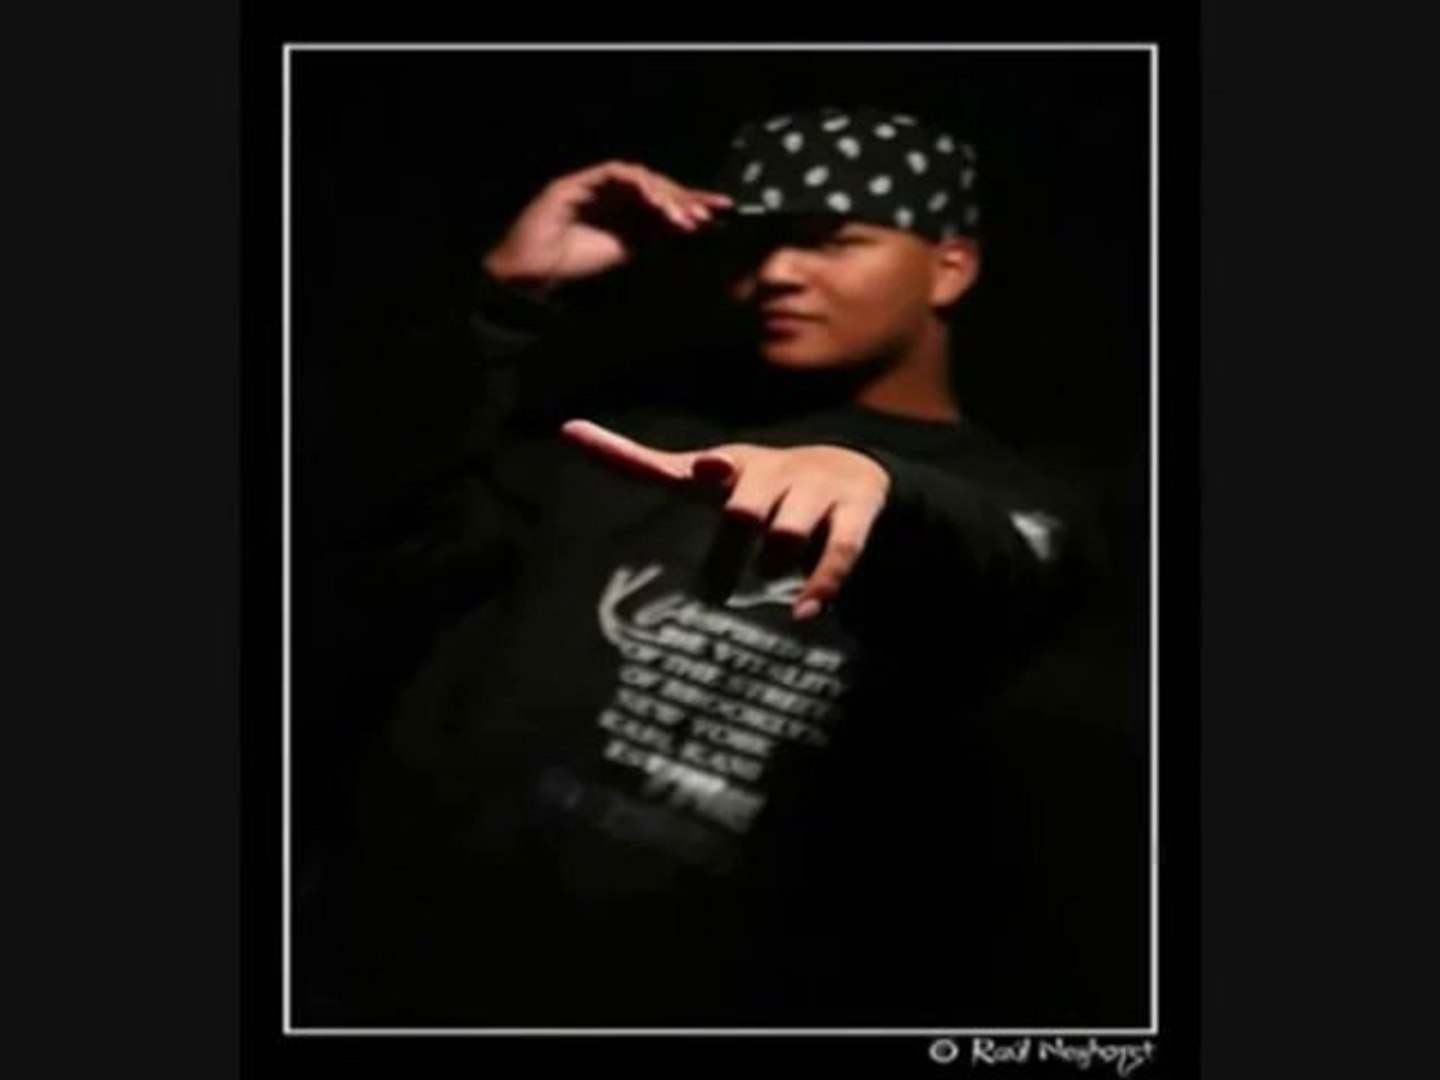 REGGAETON♫ GHETTO FLOW ft Dwayne Lace: Tonight - Escucha.com